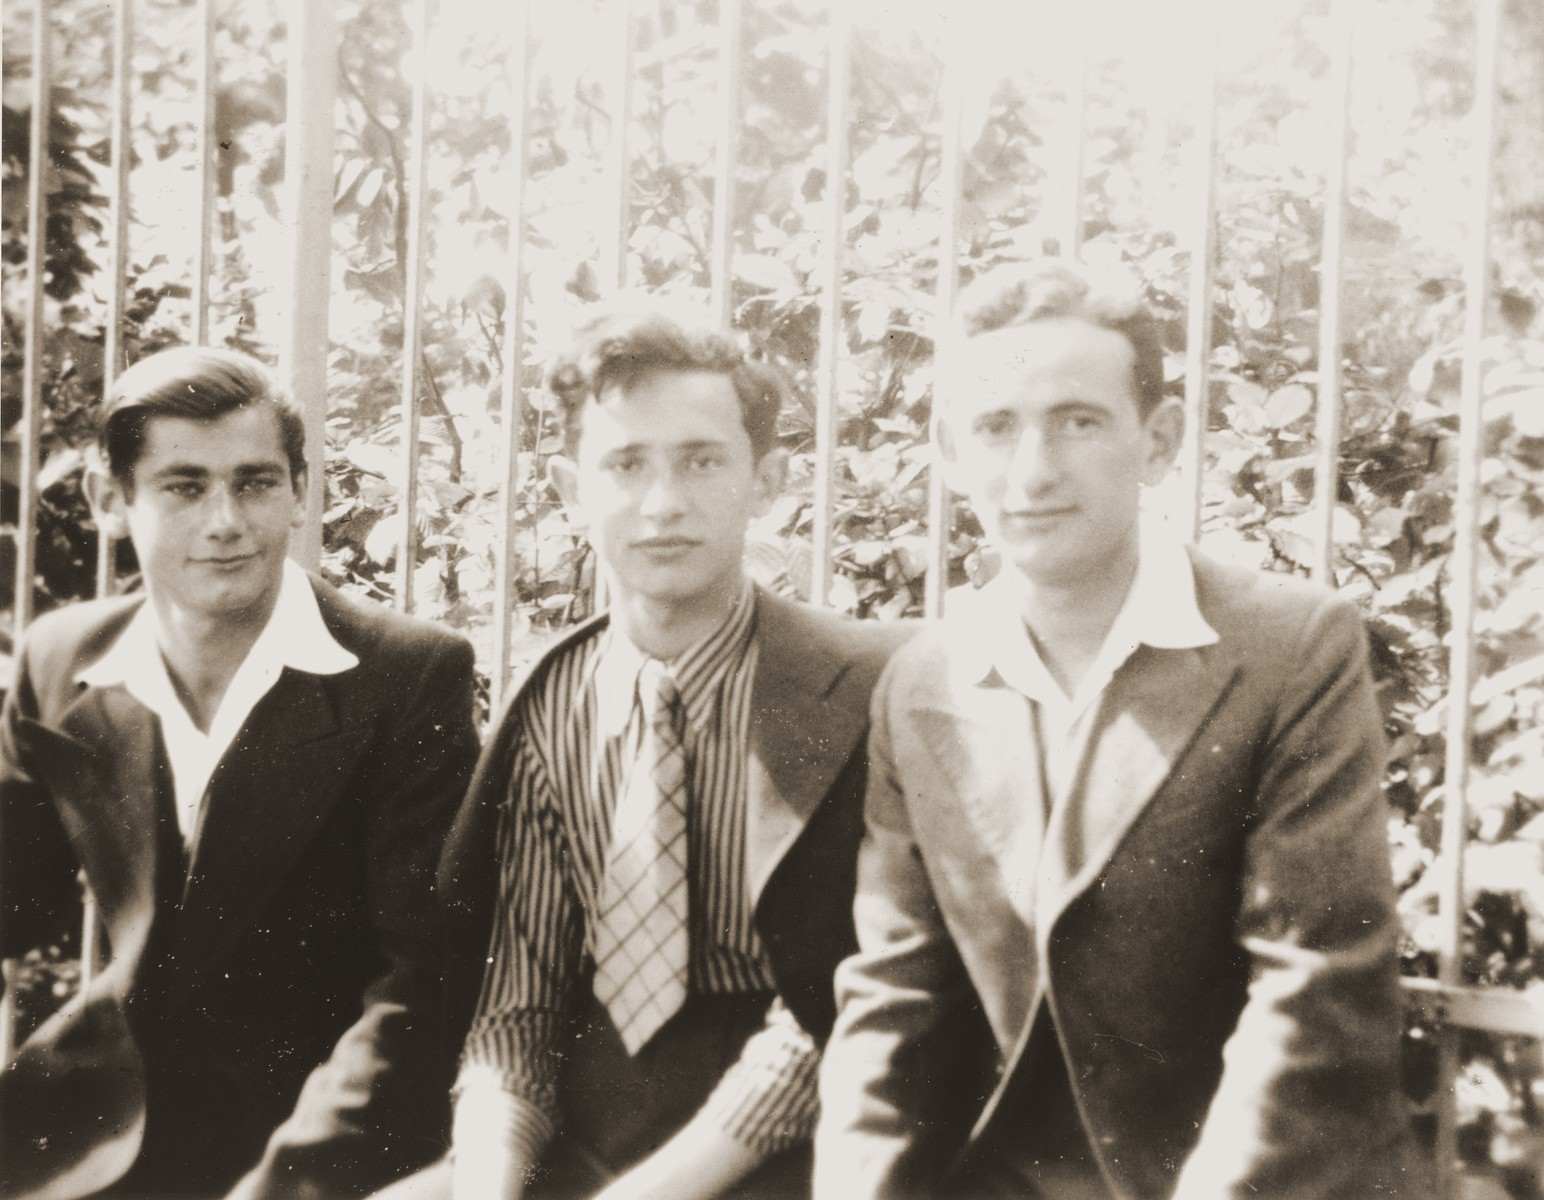 Three Jewish youth who are graduating high school together pose outside in Brody, Poland.  Pictured from left to right are: Josef Ettinger, unknown, and Henryk Lanceter.